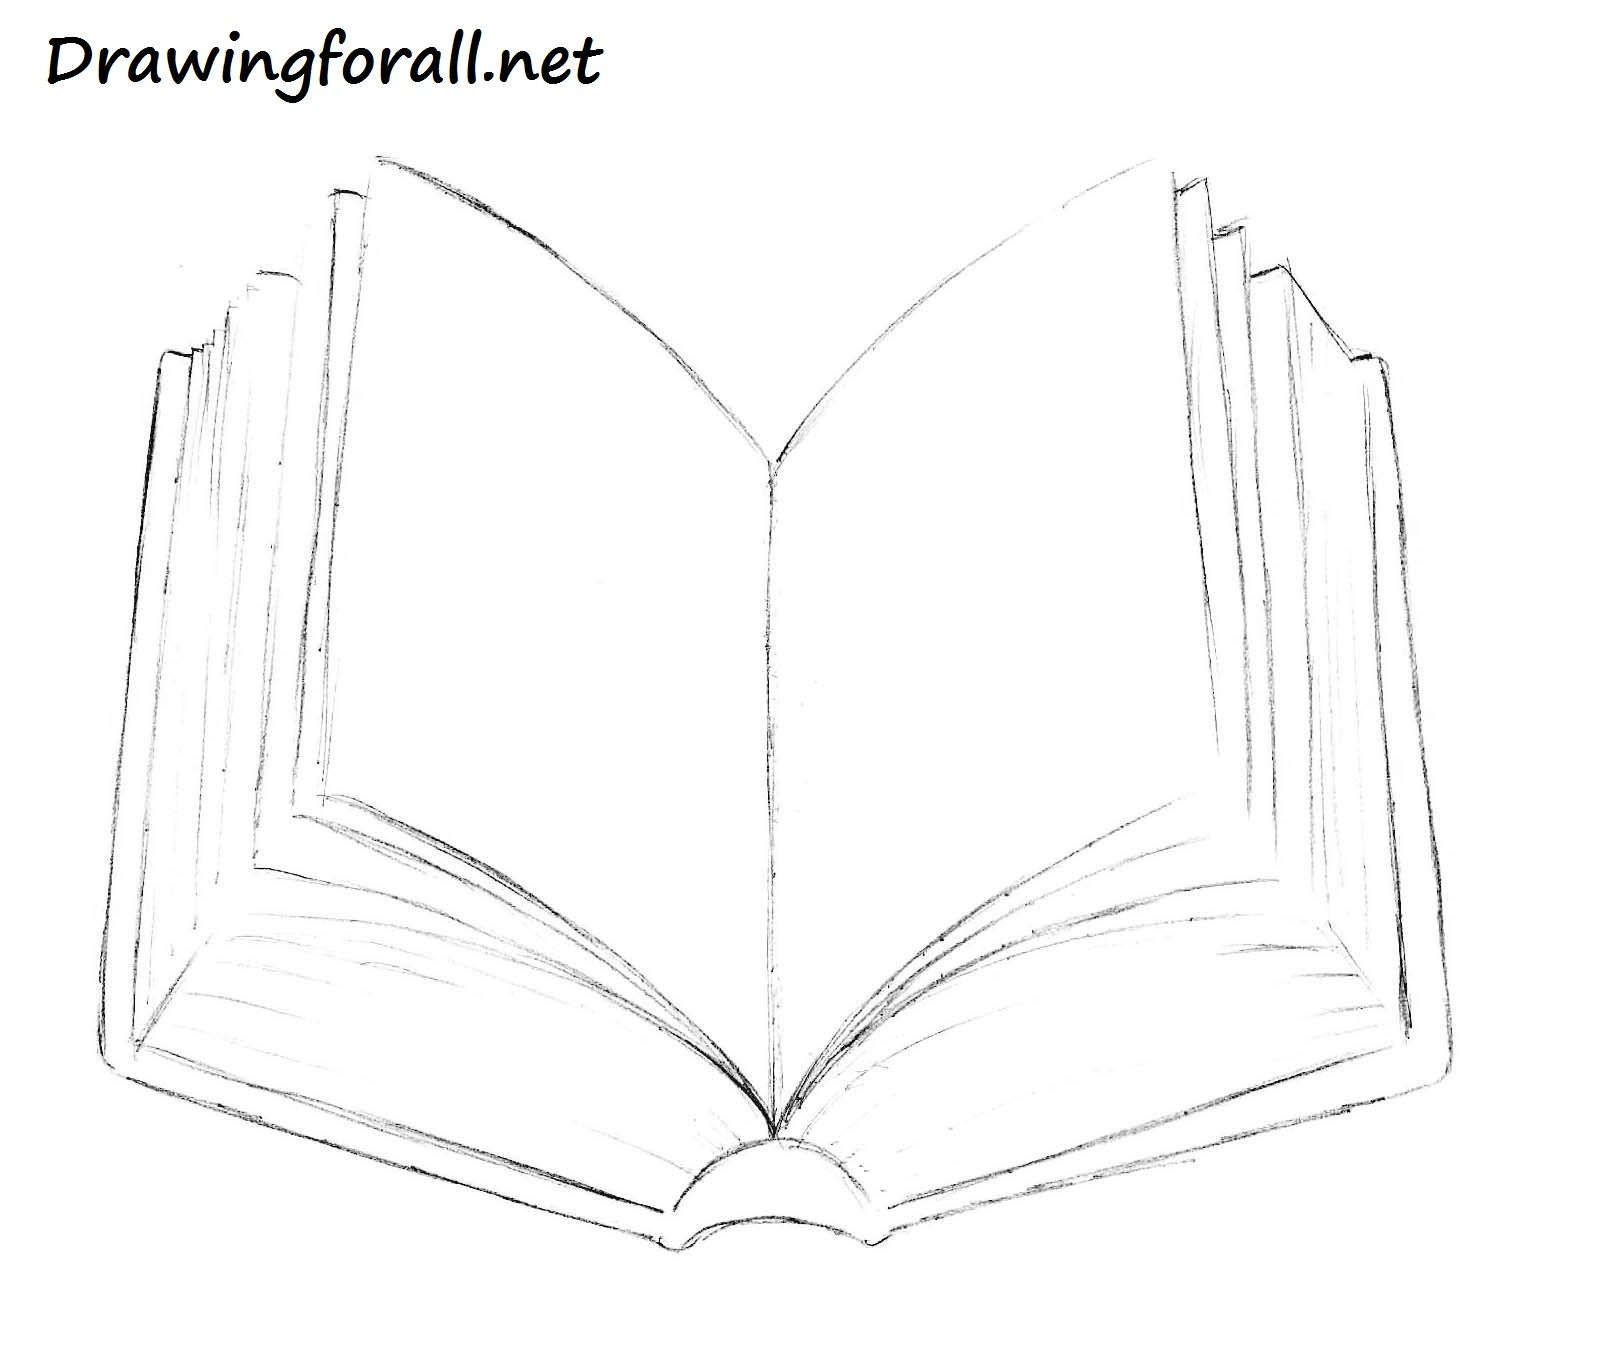 5 Book Pencil Drawing Jpg 1 618 1 348 Pixels Book Drawing Open Book Drawing Drawing Tutorial